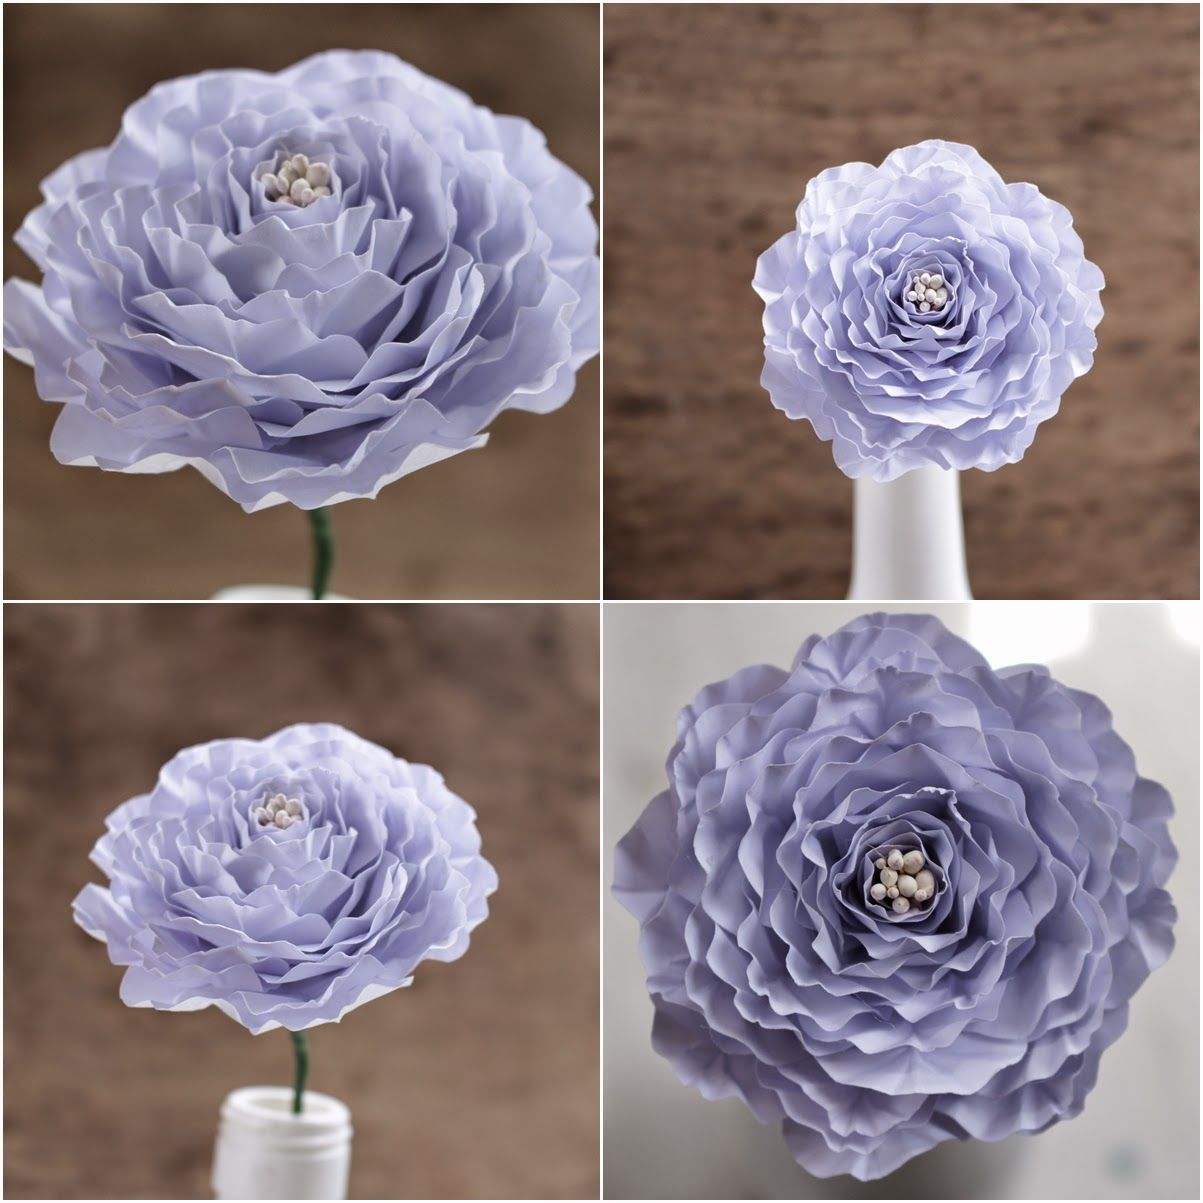 diy how to make a paper peony flower reduce reuse recycle replenish restore diy. Black Bedroom Furniture Sets. Home Design Ideas